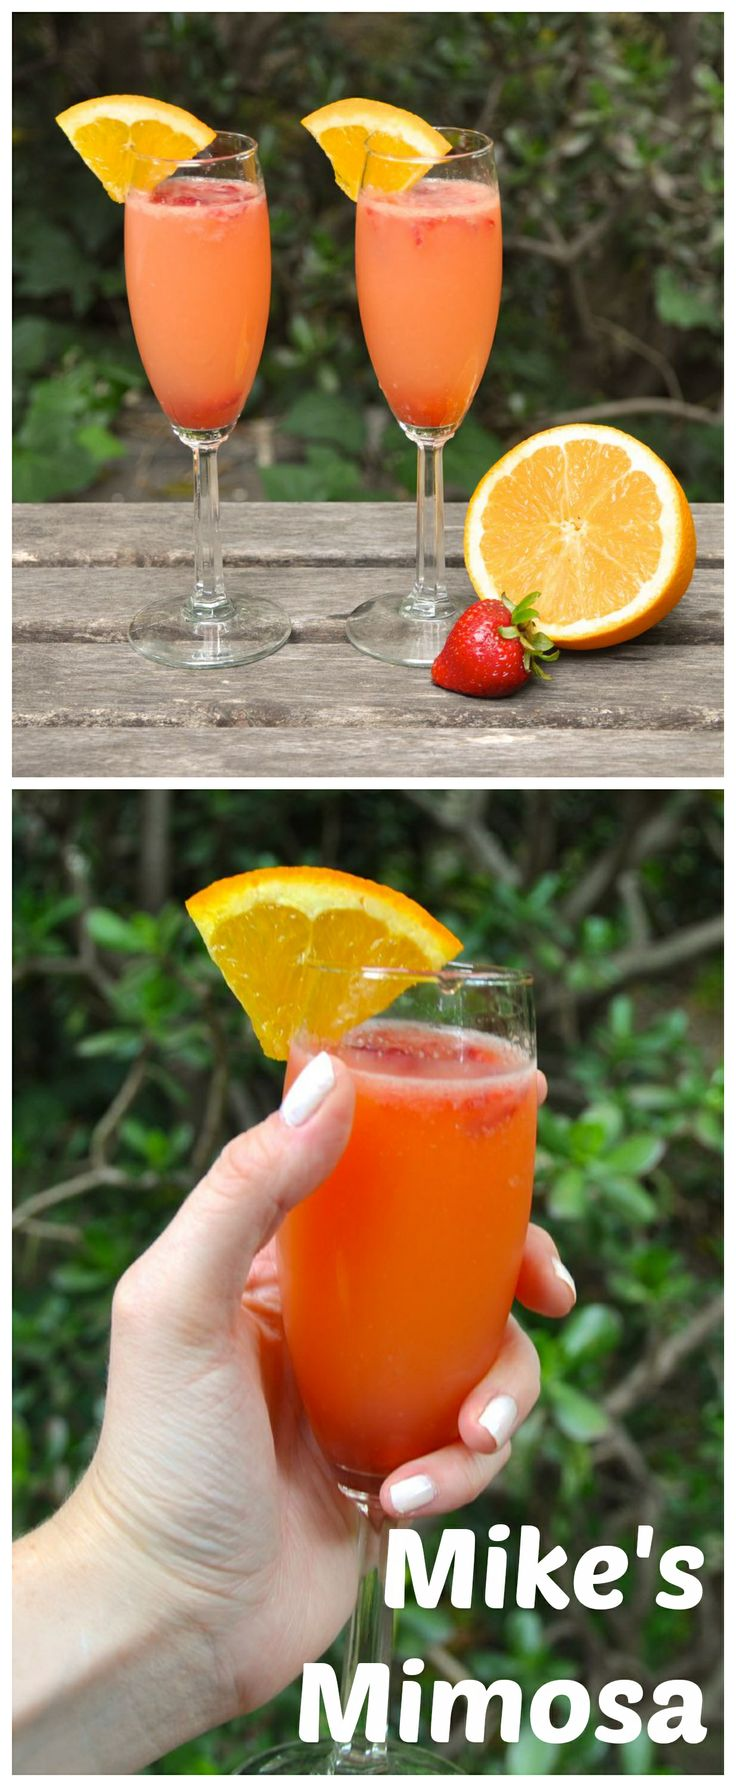 Mike's Mimosa - Mimosas made with Mike's Hard Strawberry Lemonade